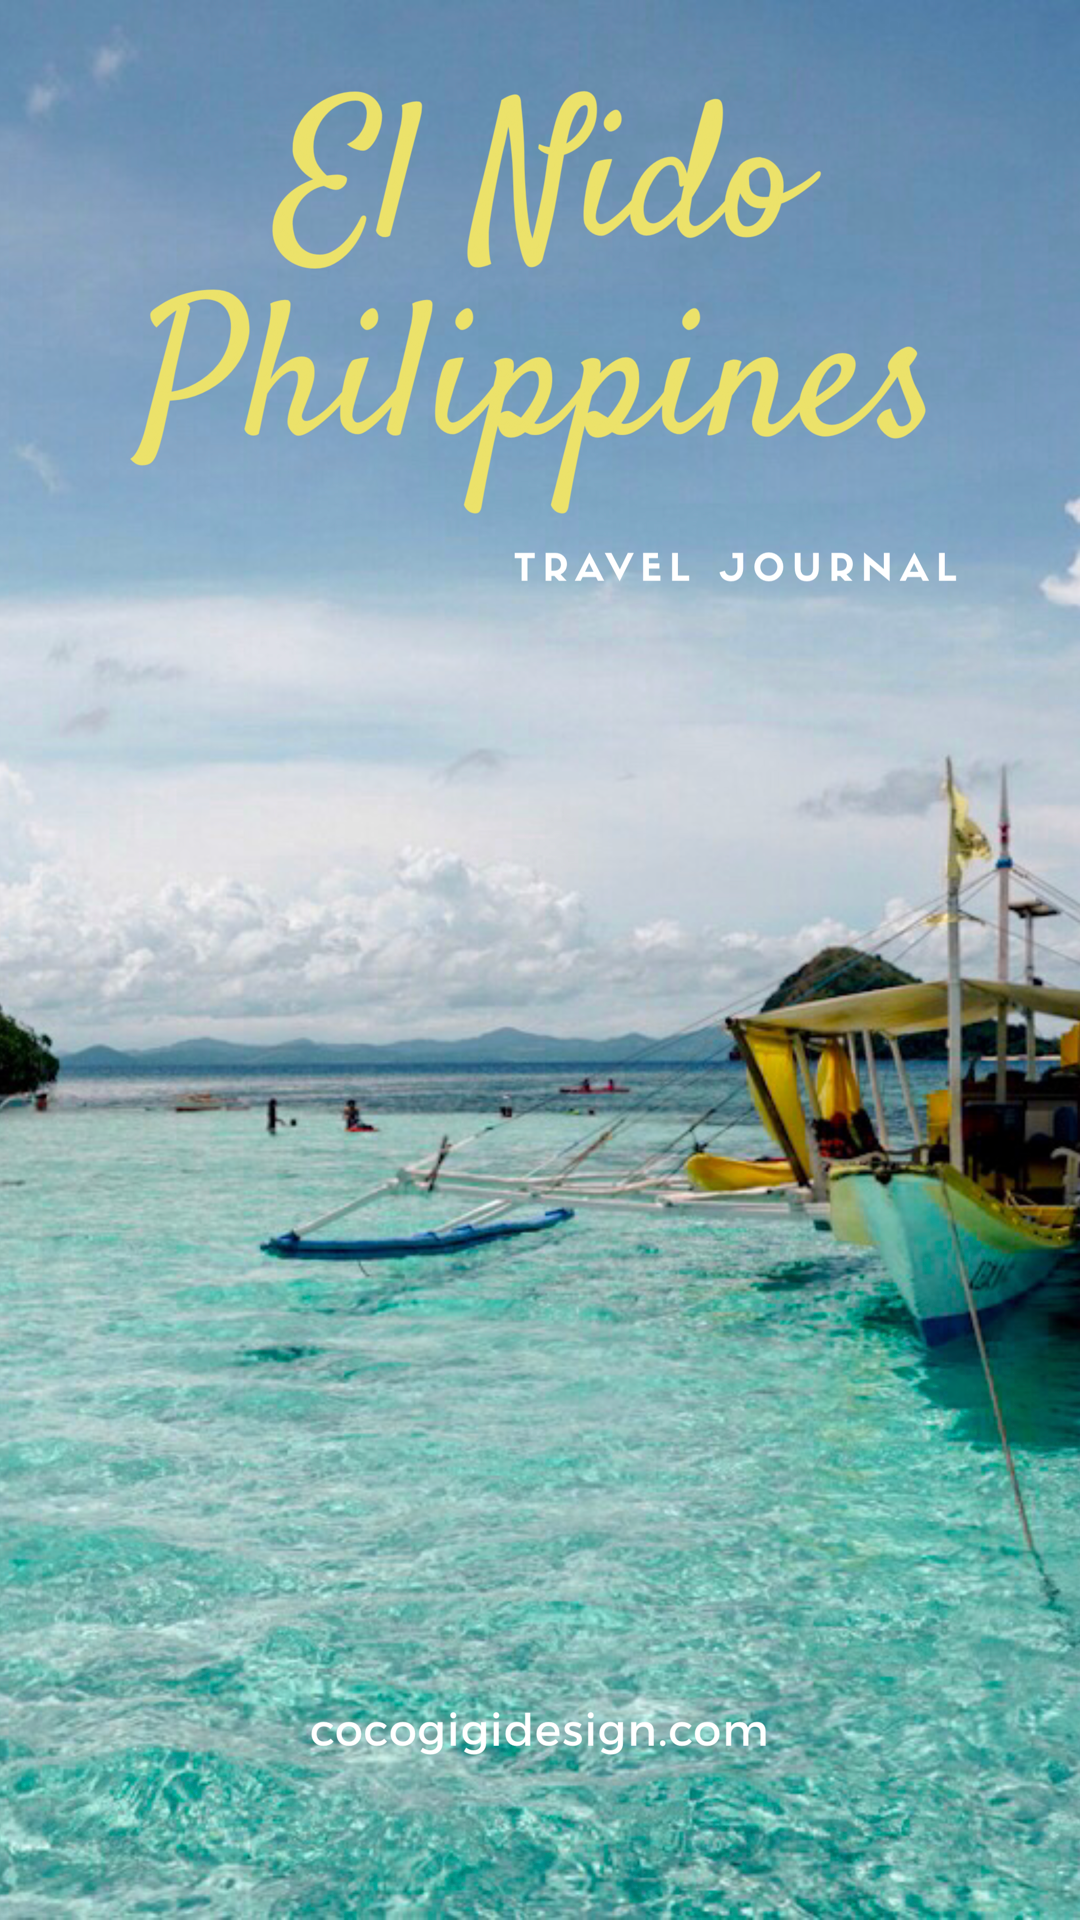 El nido - Philippines - Travel Journal - Gina Maldonado - Coco Gigi Design.png